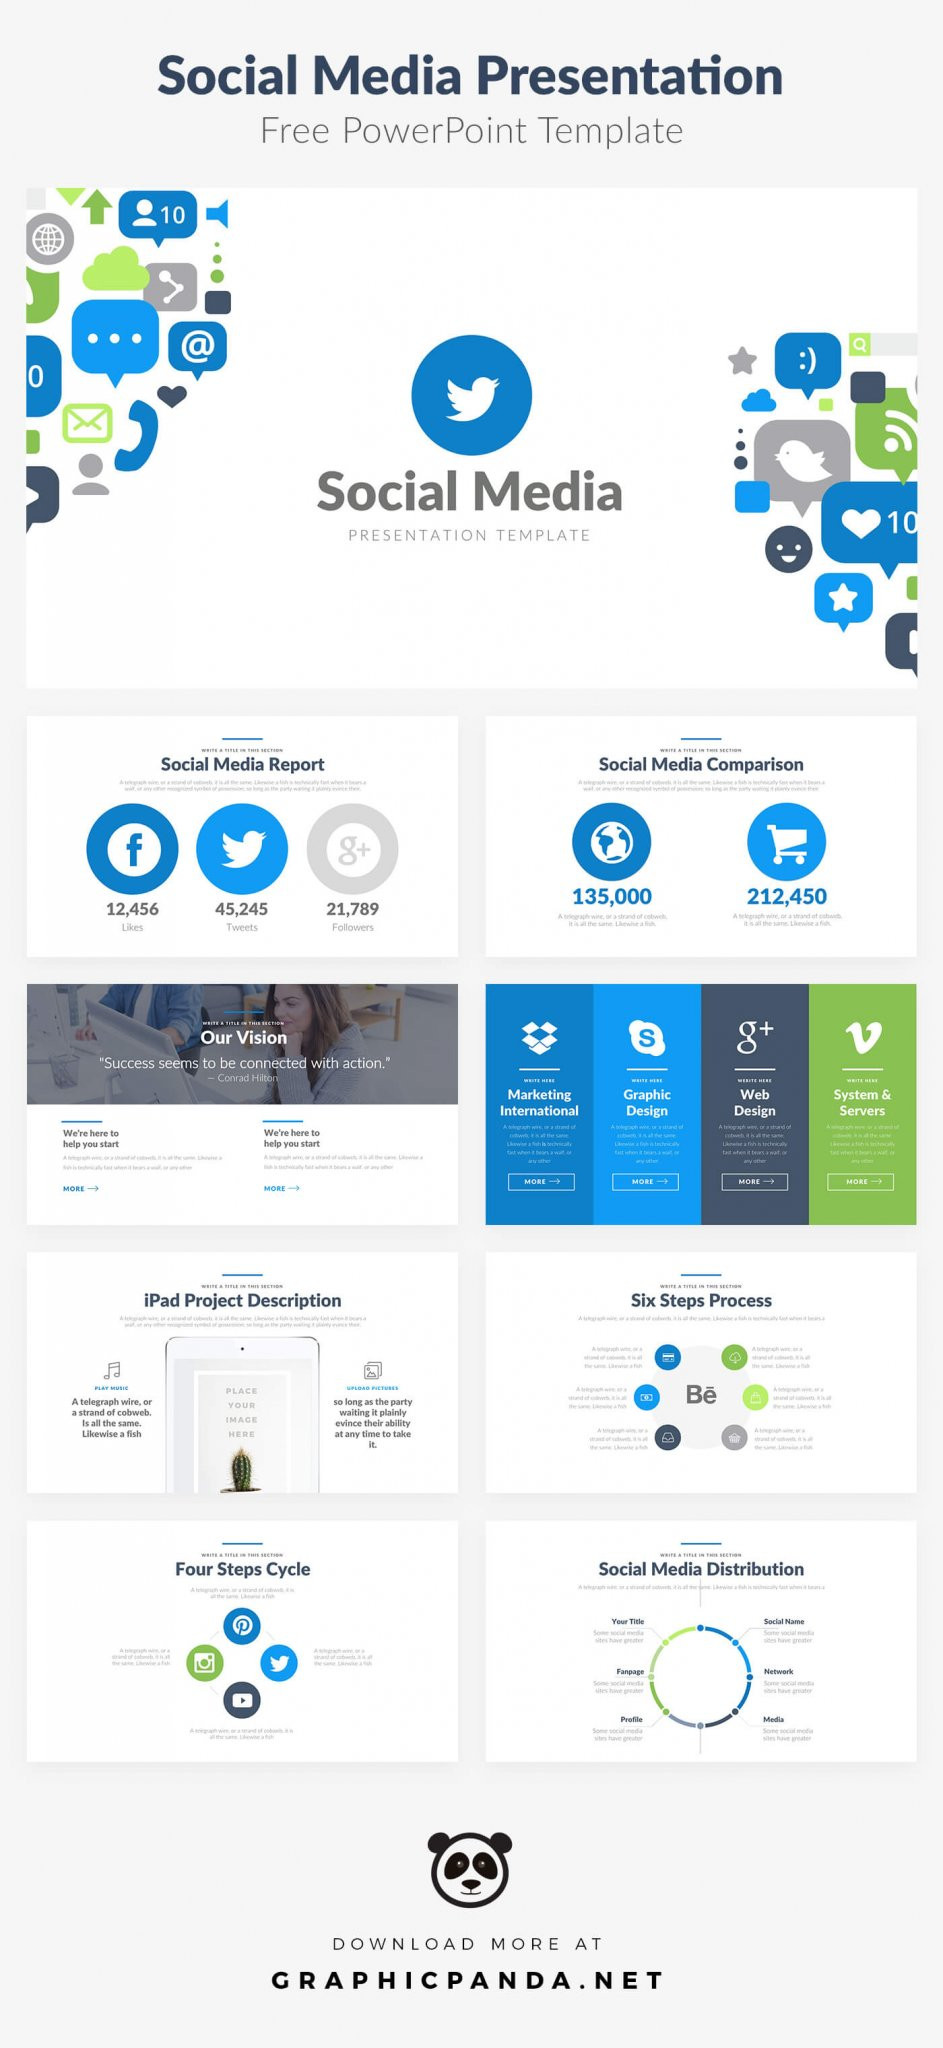 10 Free Social Media Slides Templates for Microsoft PowerPoint